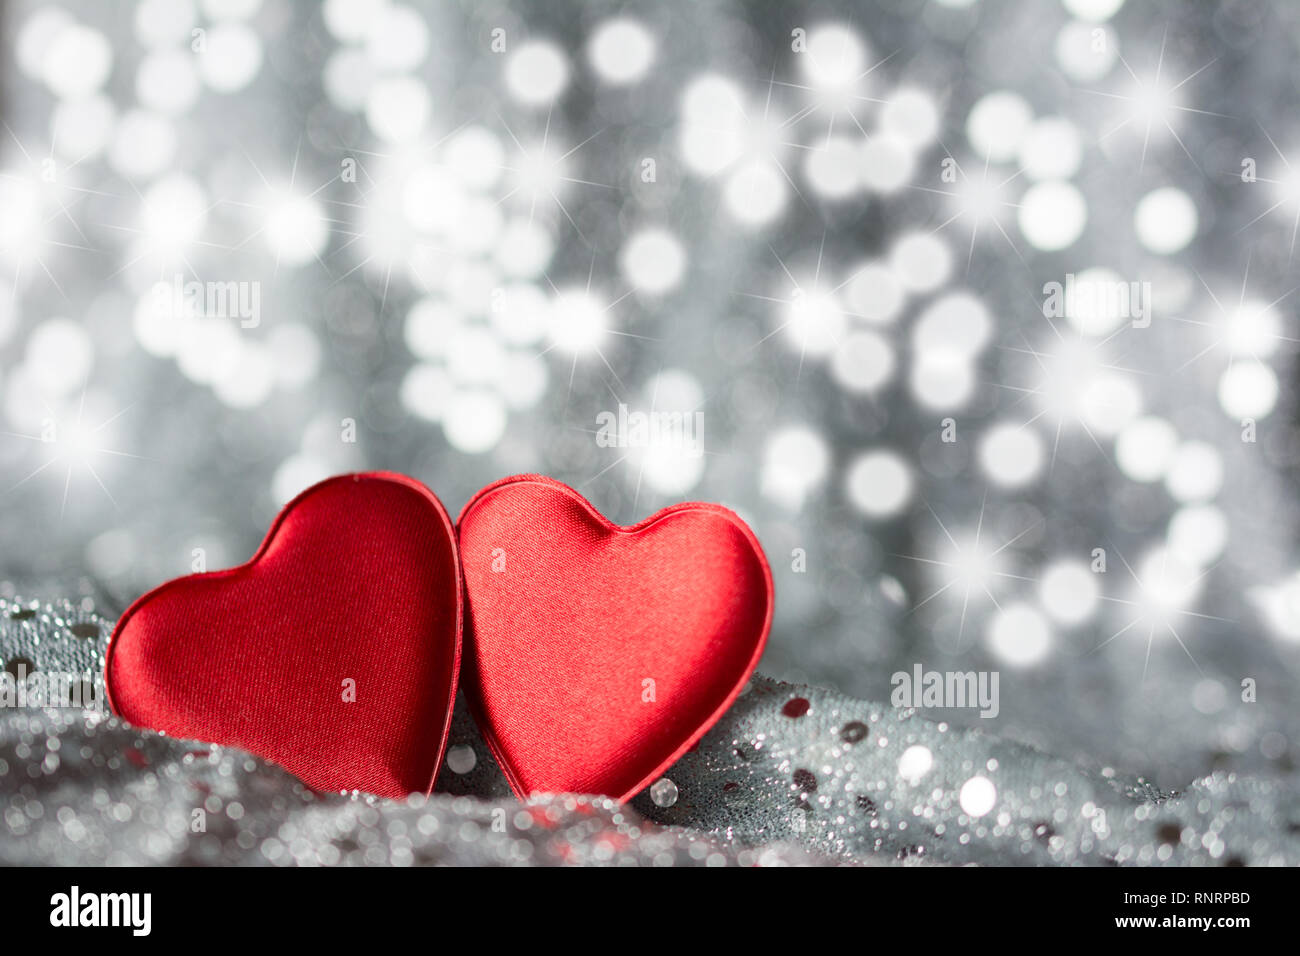 Two red hearts on silver fabric with sequins - silver background with stars and spots bokeh - Stock Image